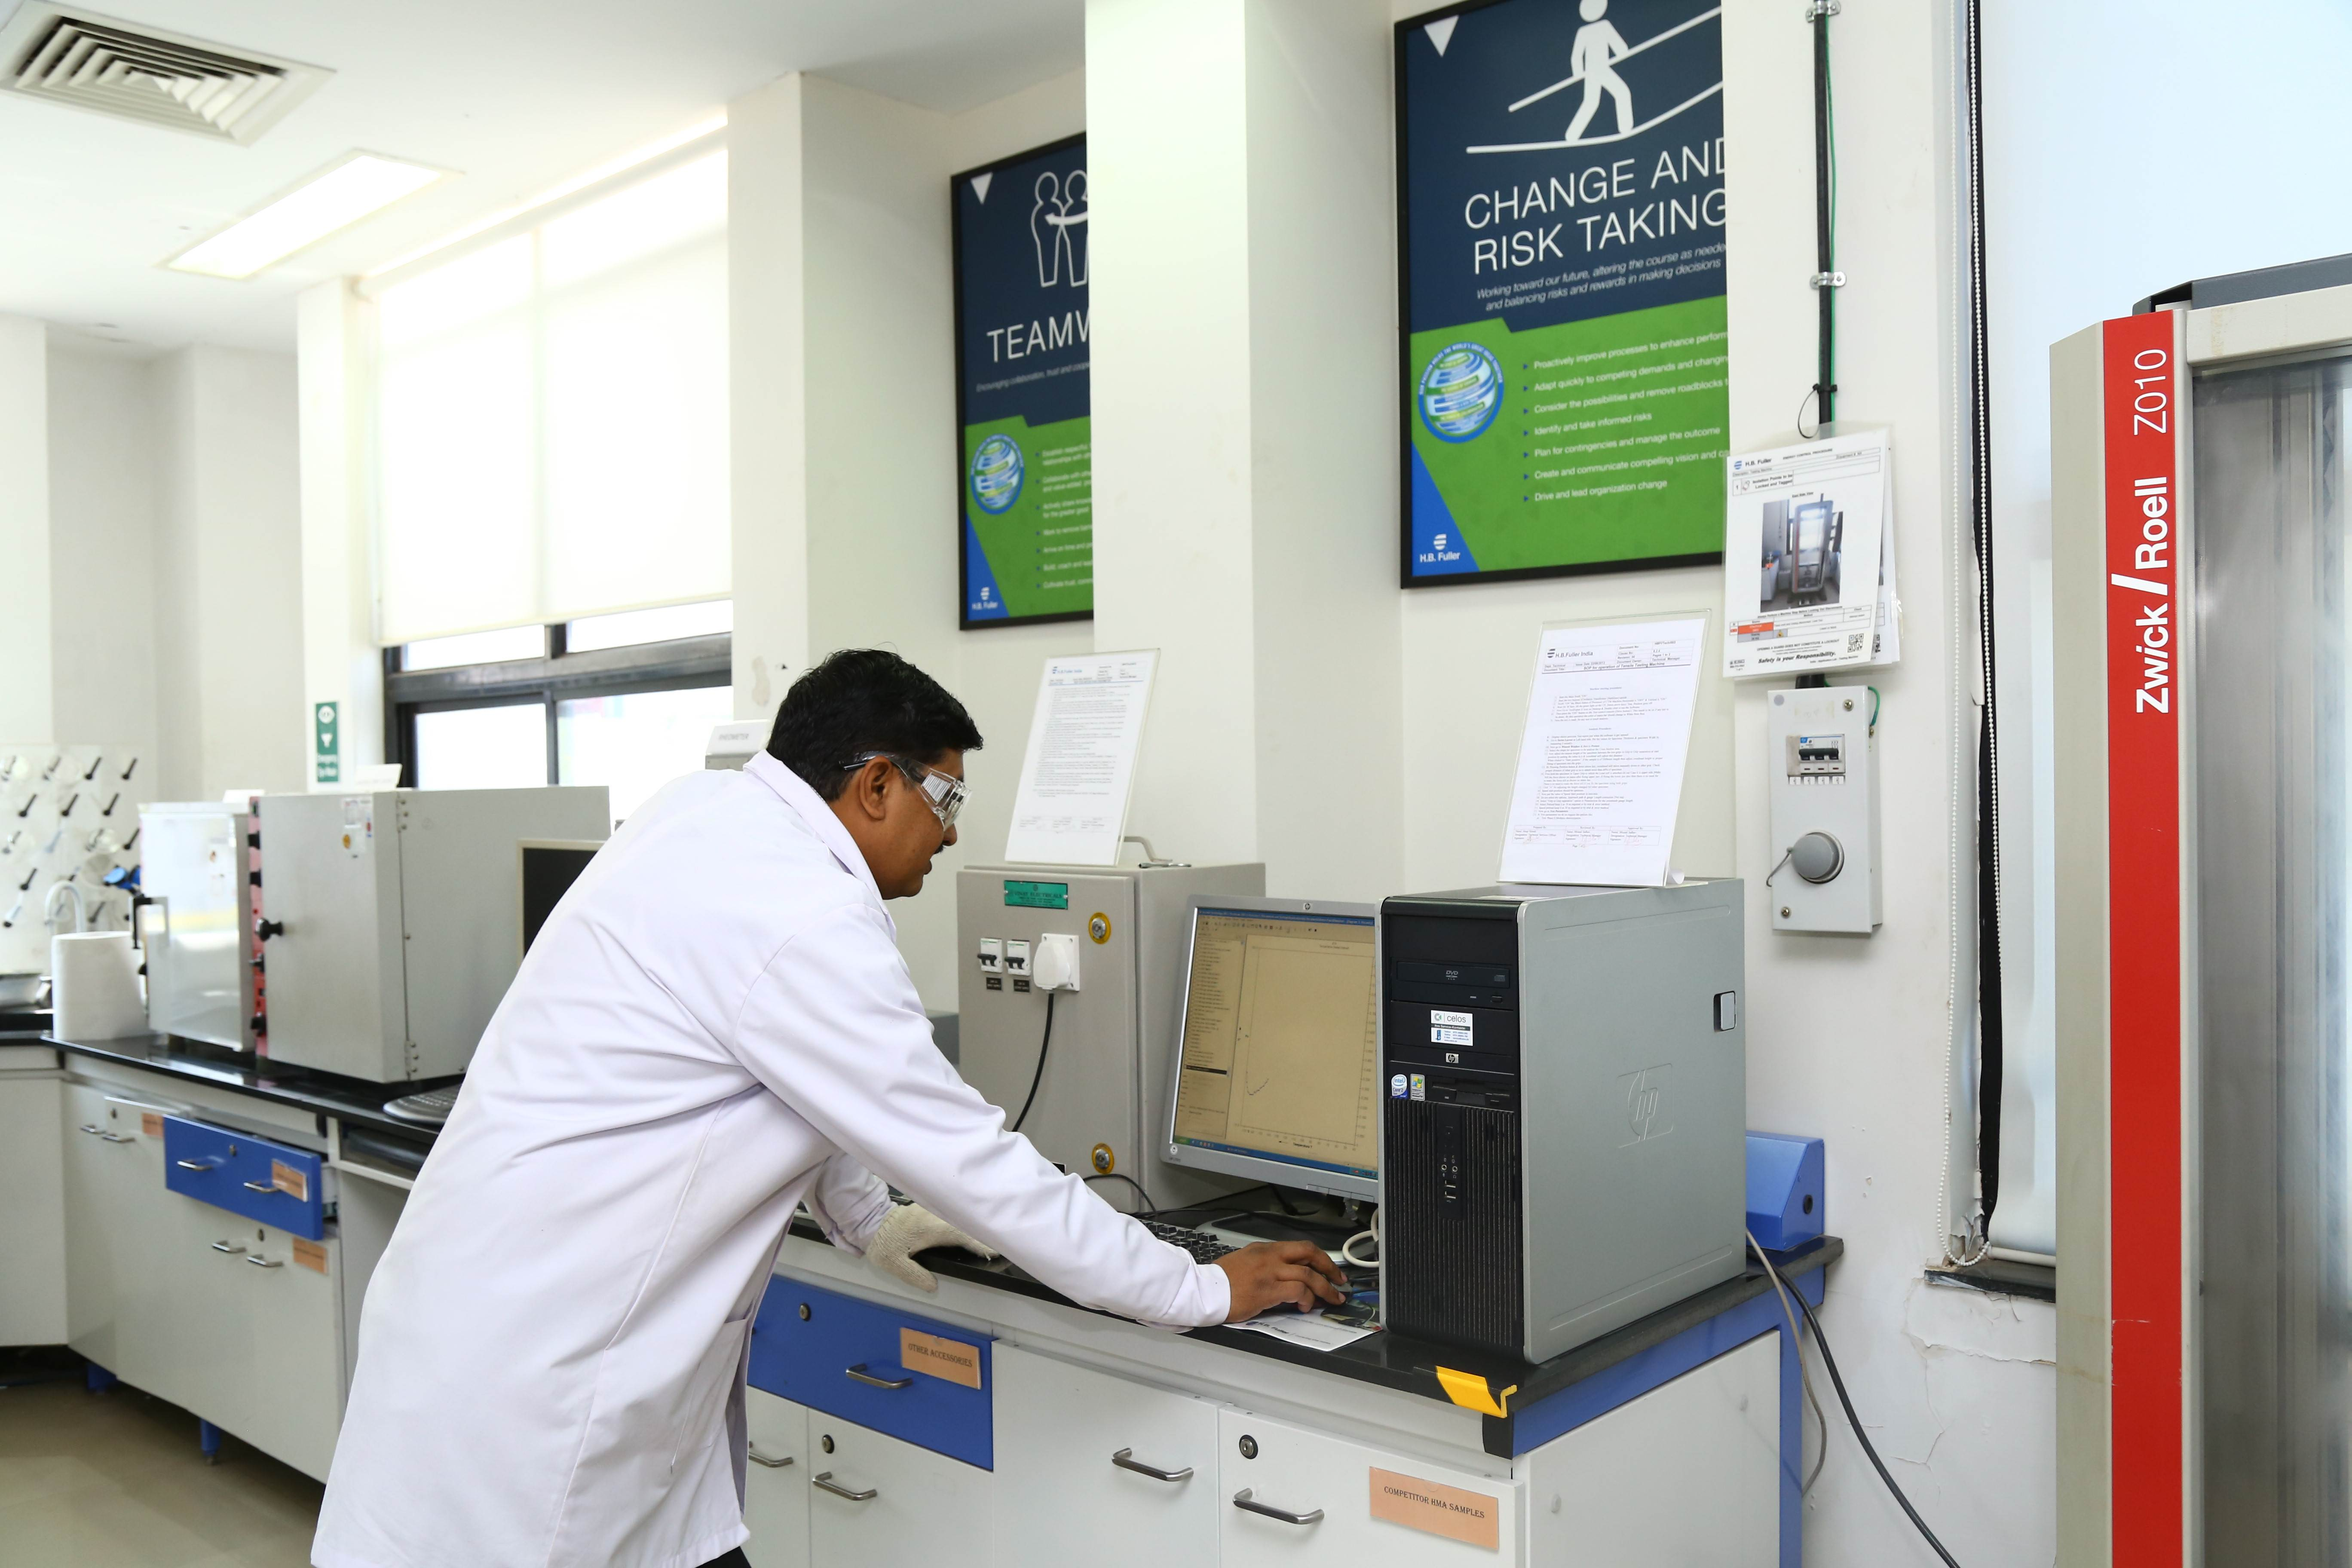 A scientist working in H.B. Fuller's lab in Pune, India at their Technology Center of Excellence.